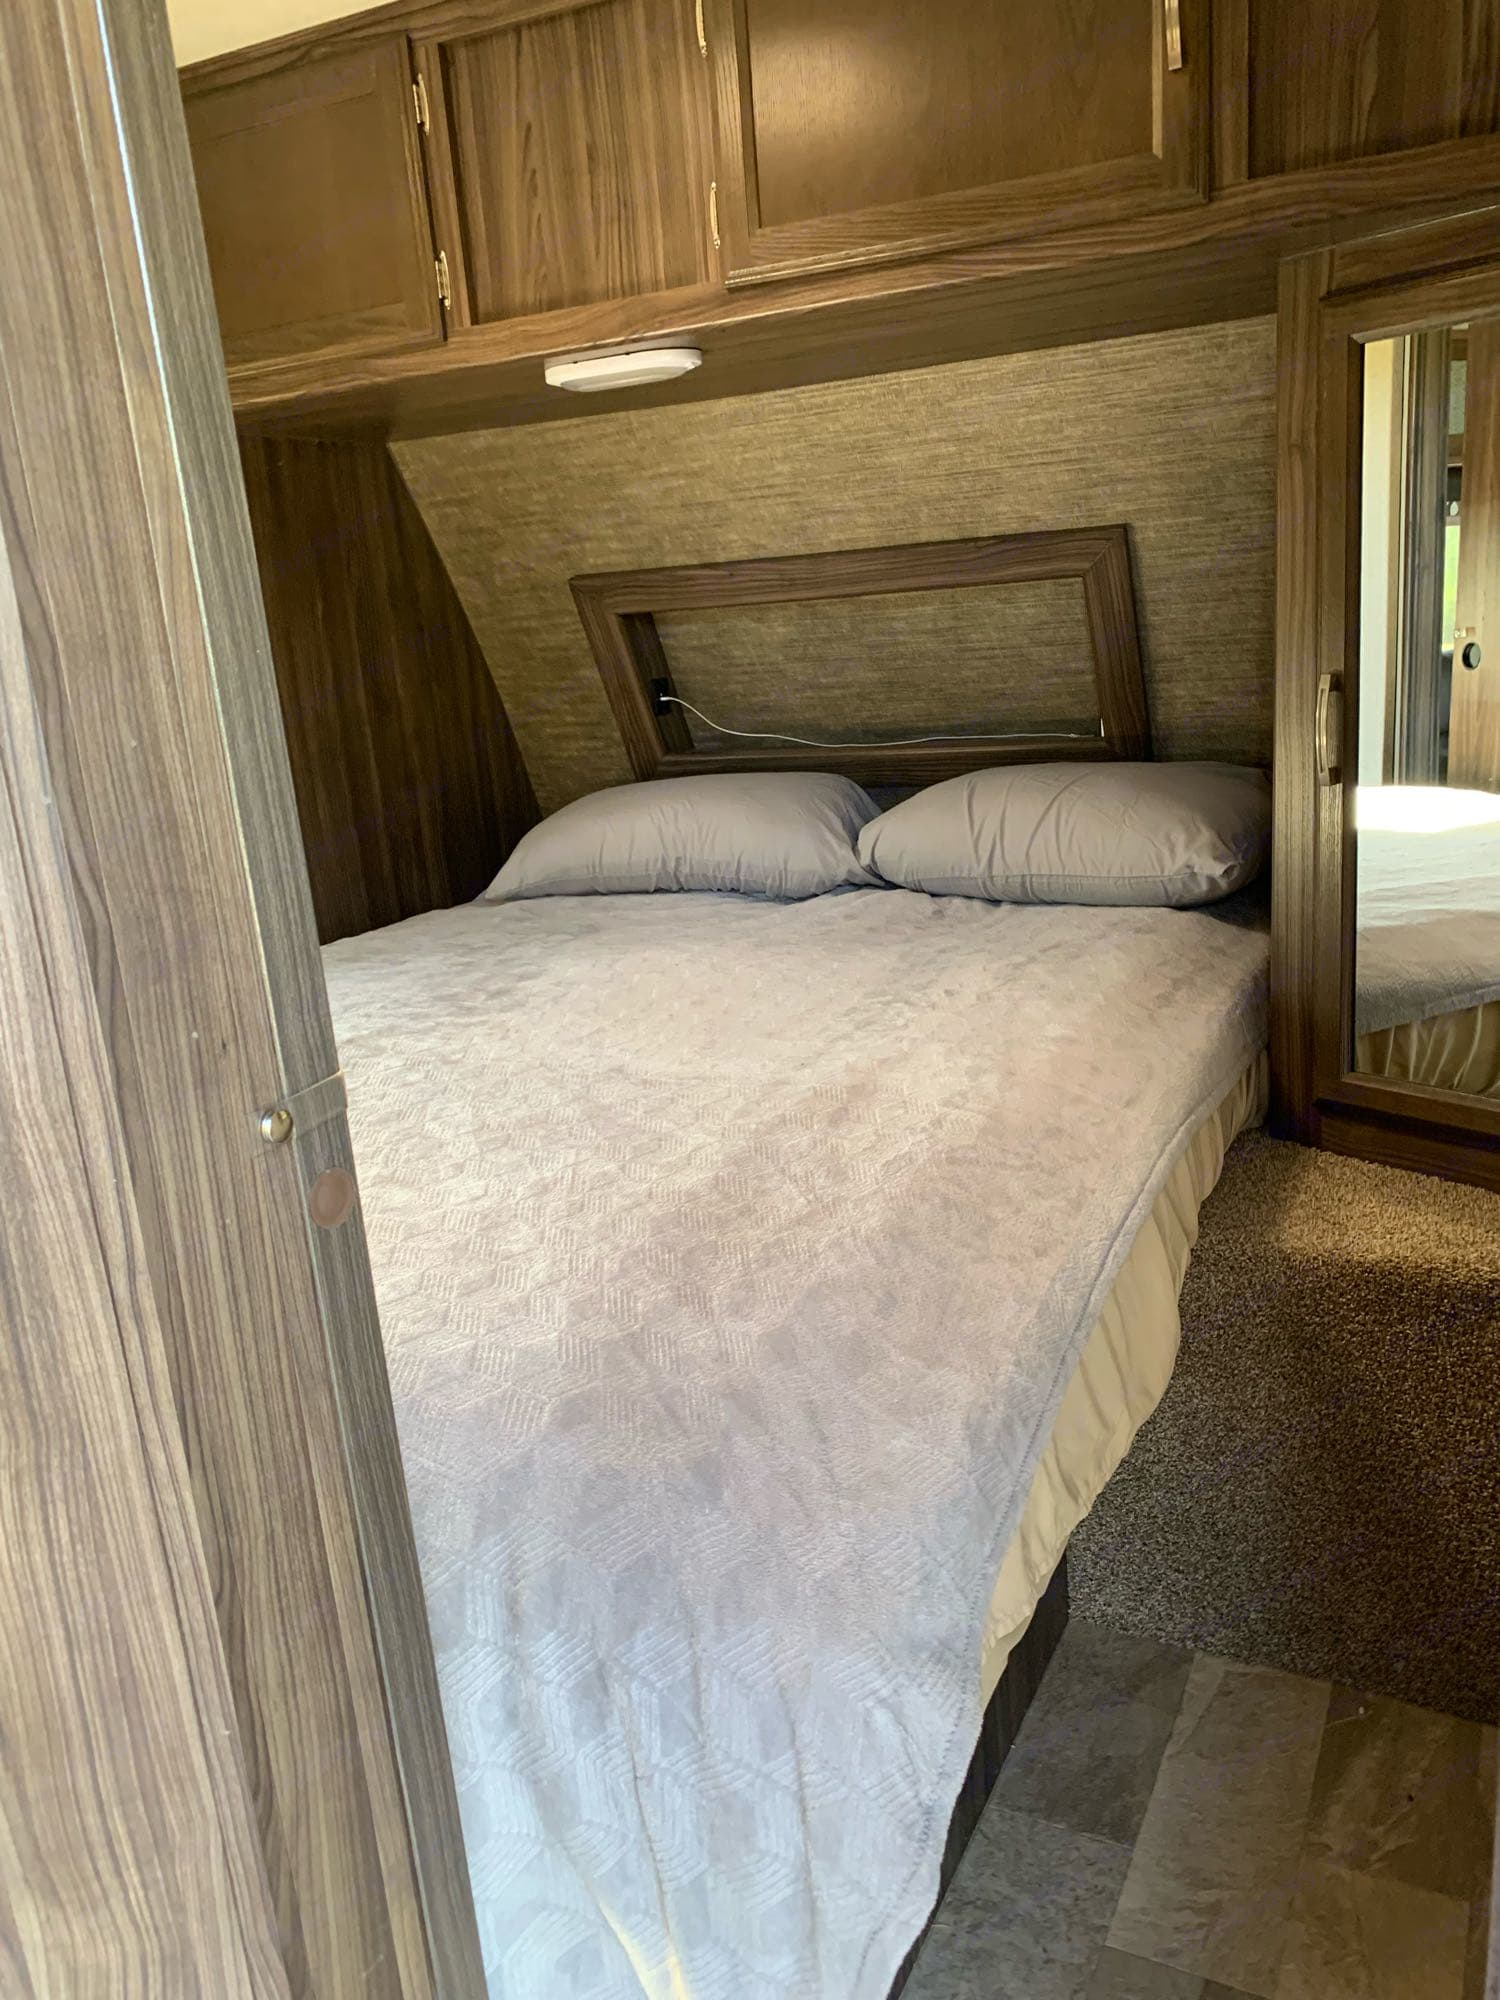 Queen size bed with a memory foam topper for added comfort.. Coachmen Apex 2018